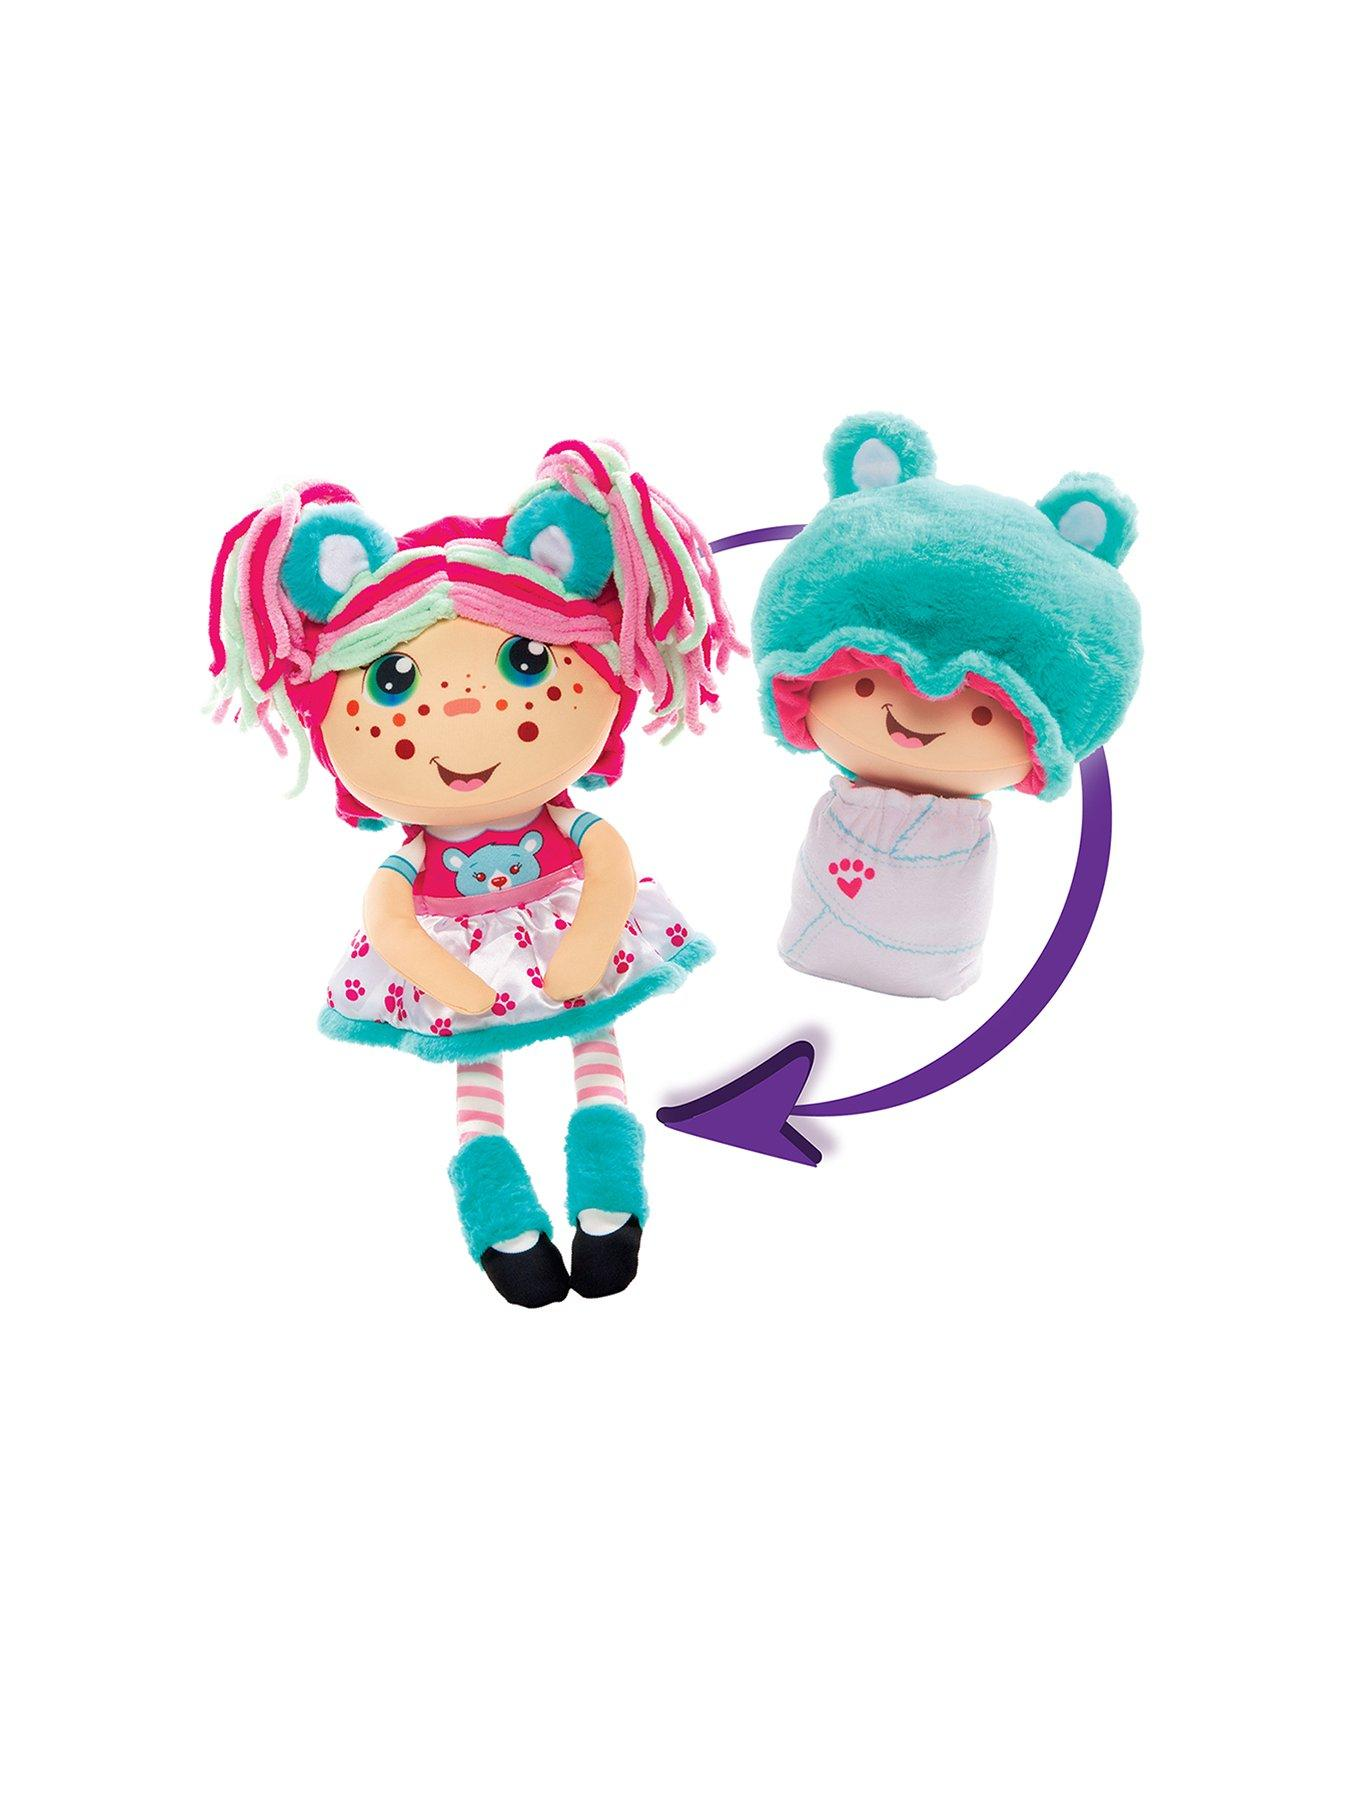 Compare prices for Flipzee Girls 9 inch To 15 inch Zoey